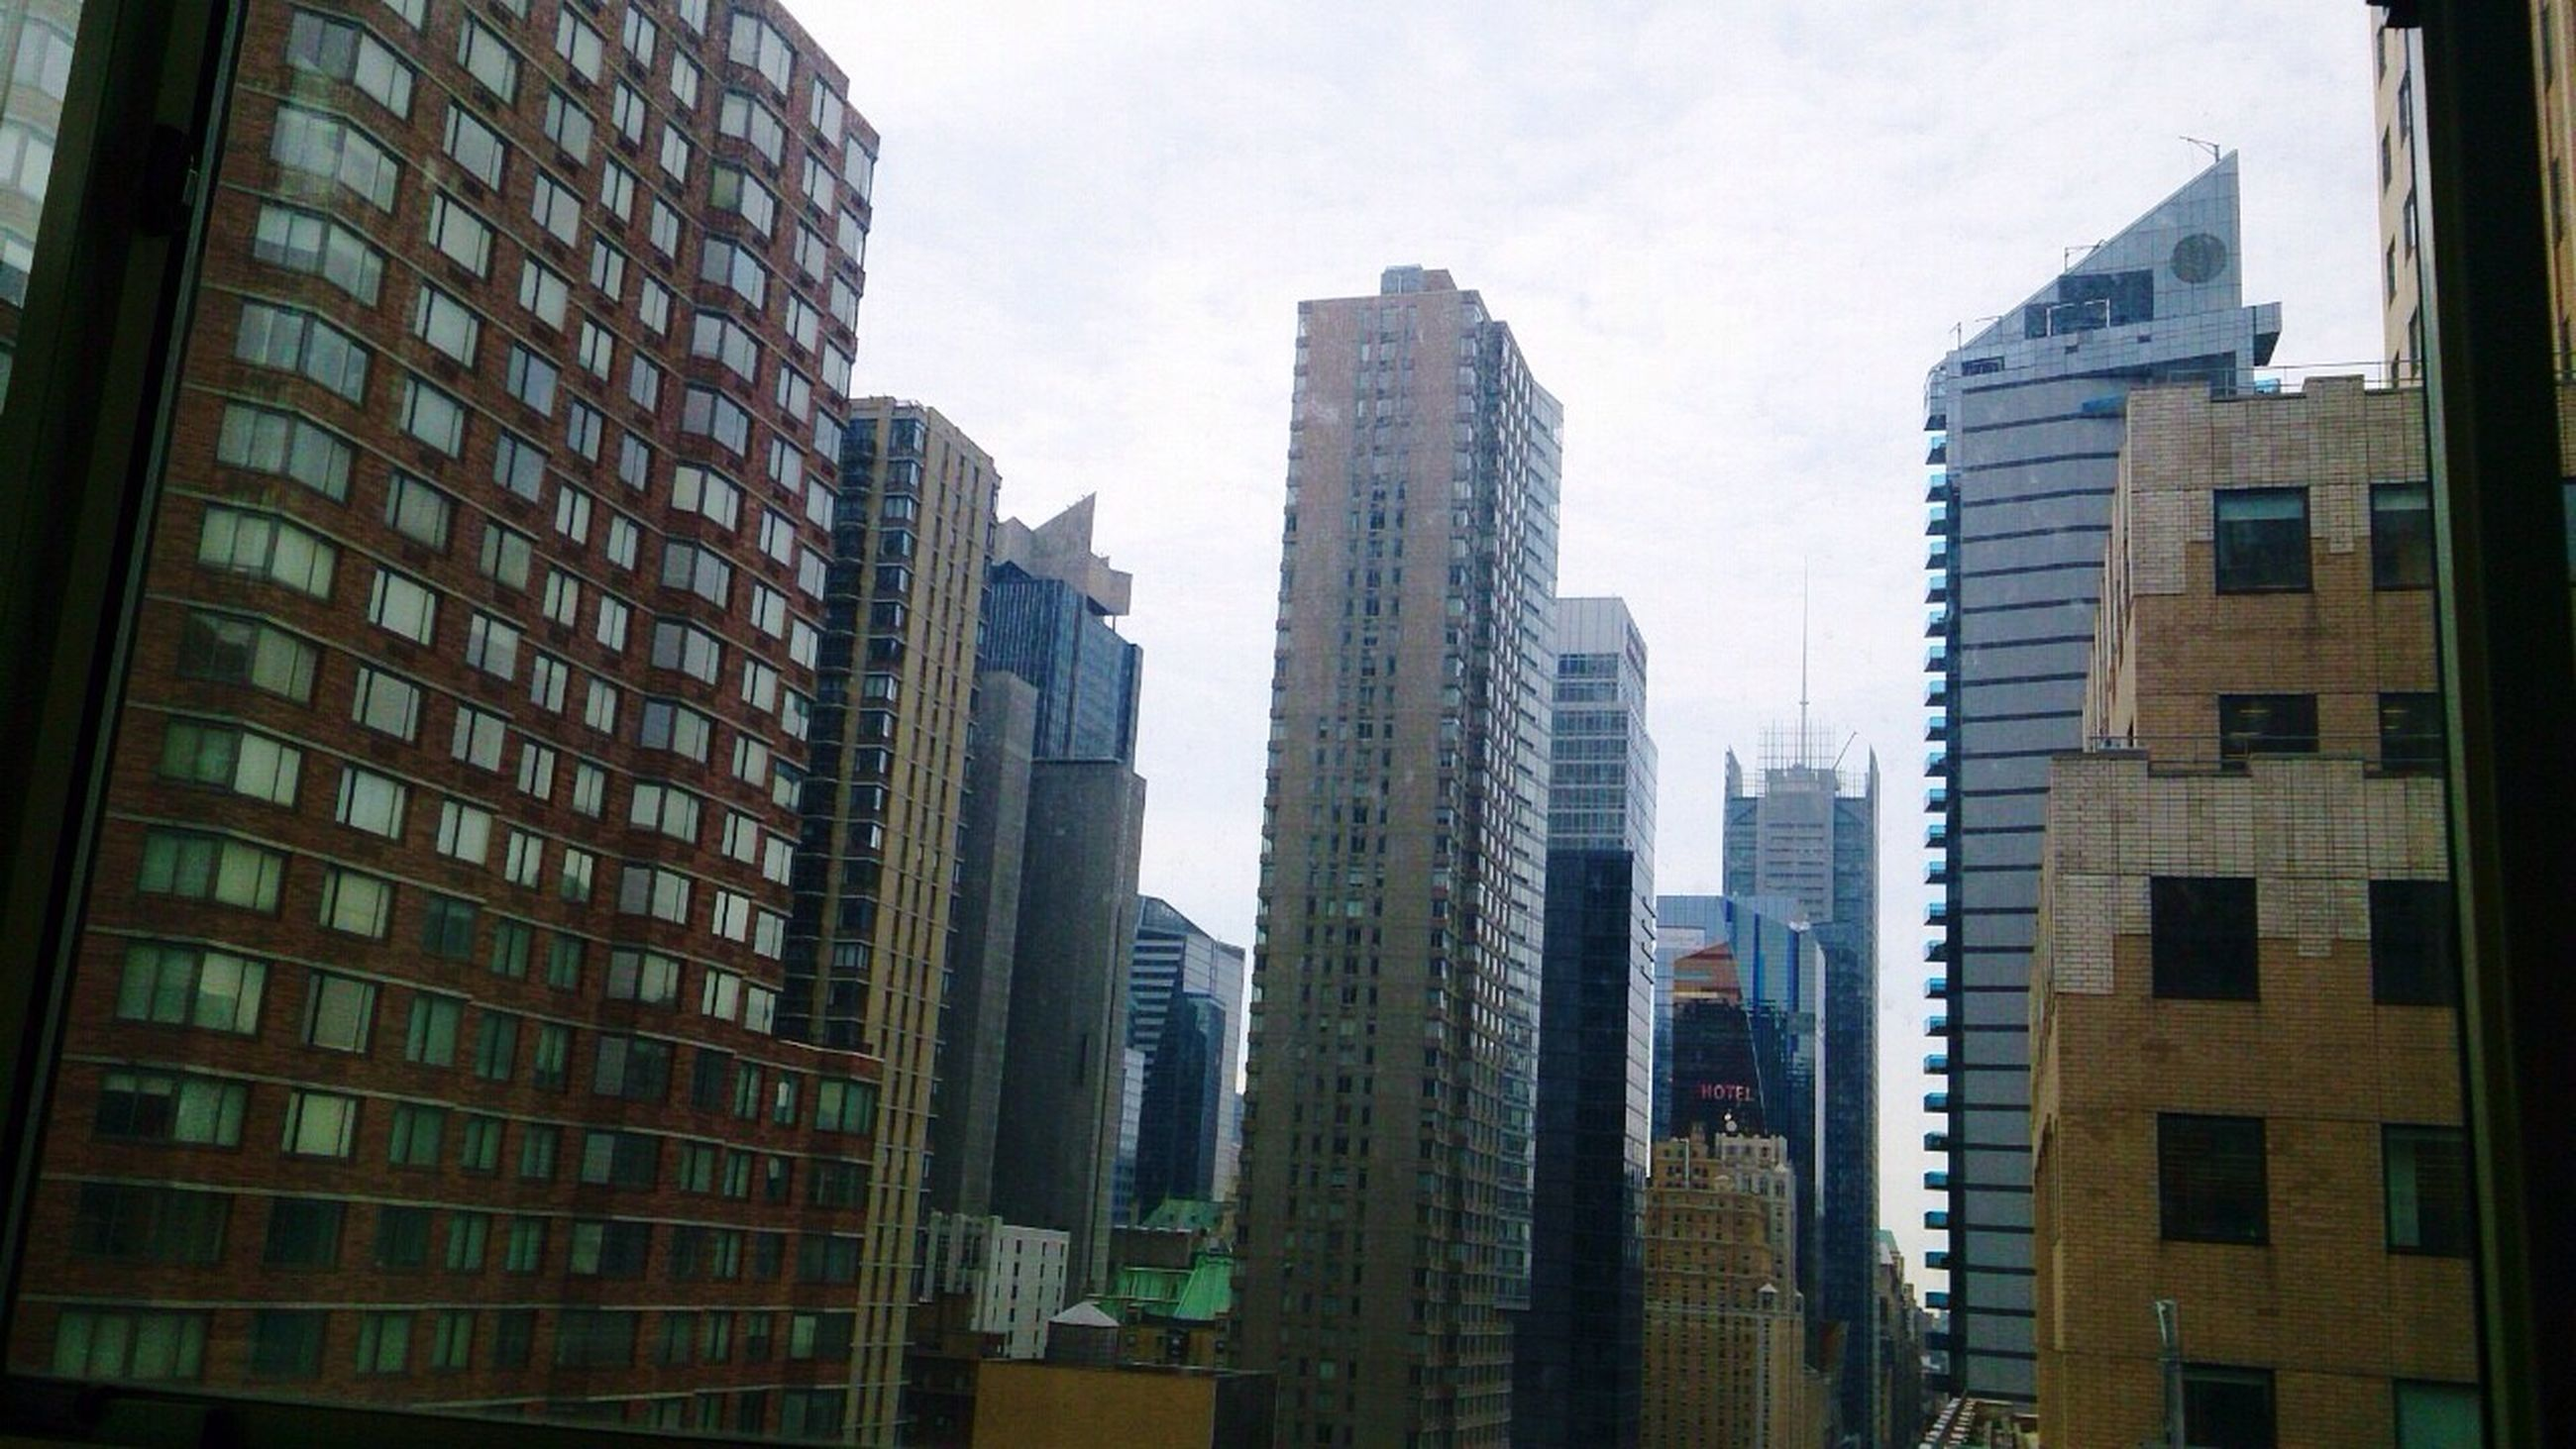 building exterior, architecture, built structure, city, skyscraper, office building, modern, tall - high, low angle view, building, tower, sky, glass - material, tall, window, city life, residential building, financial district, development, urban skyline